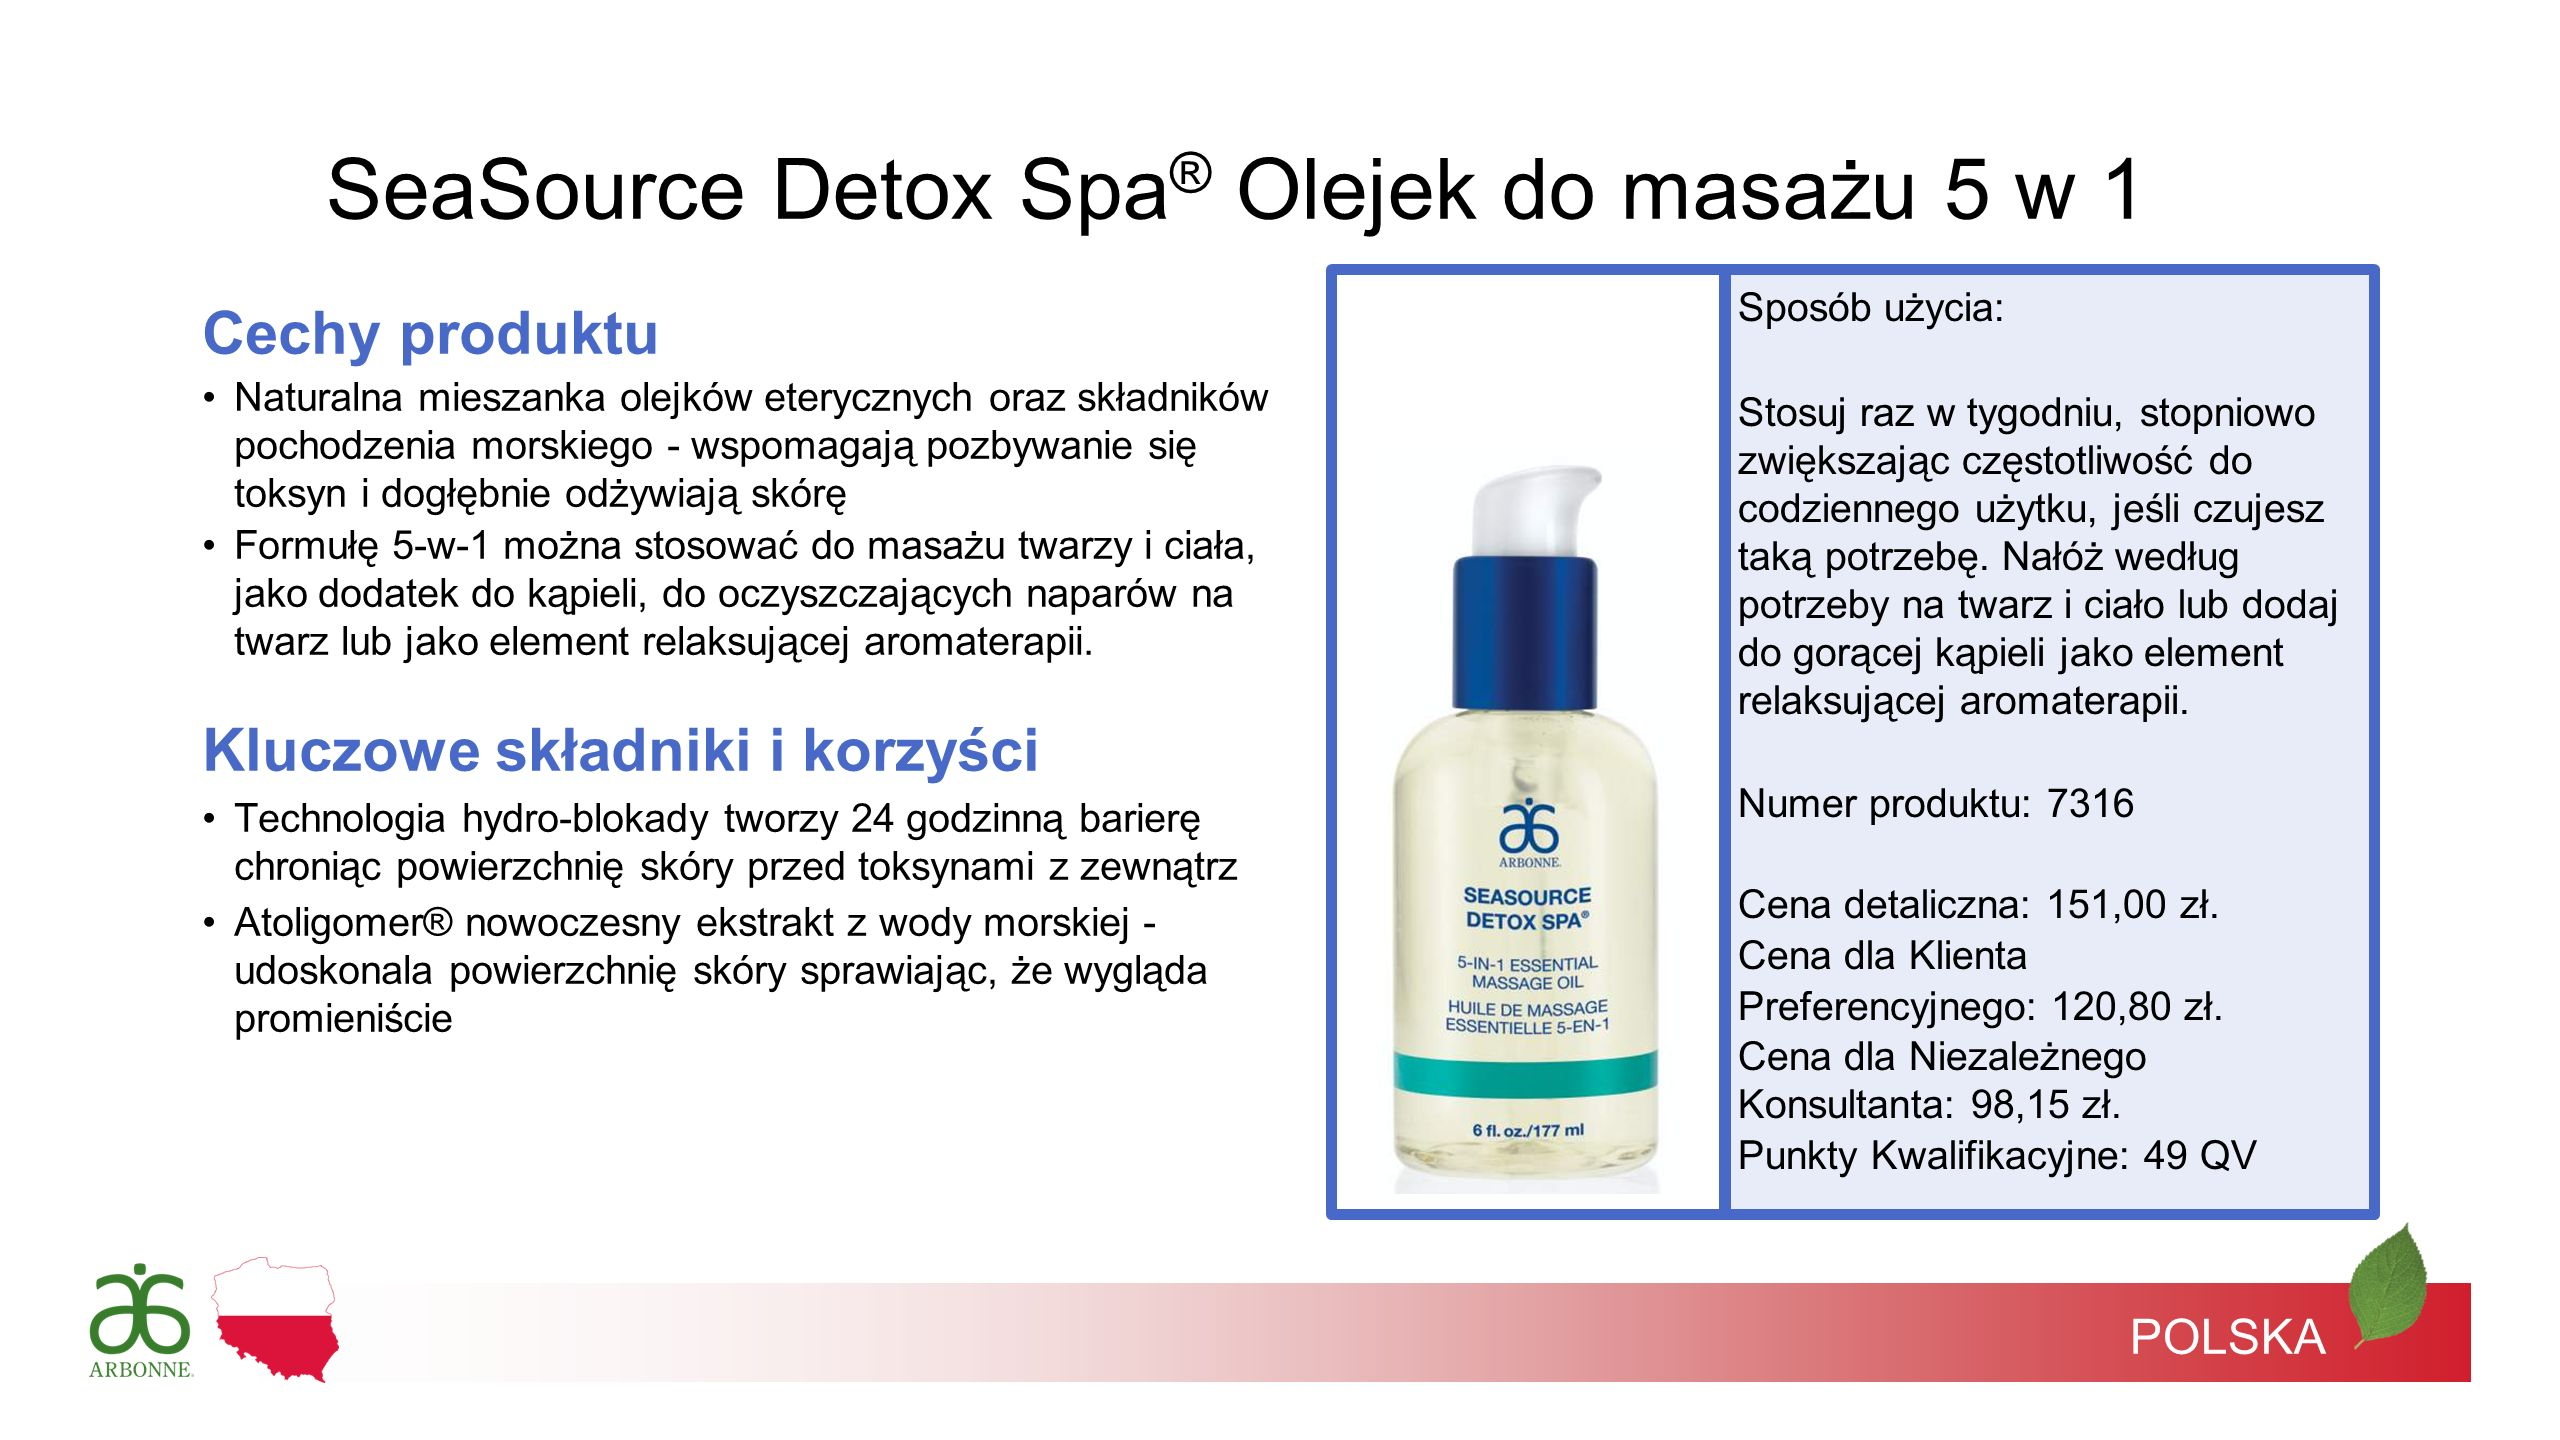 SeaSource Detox Spa® Olejek do masażu 5 w 1